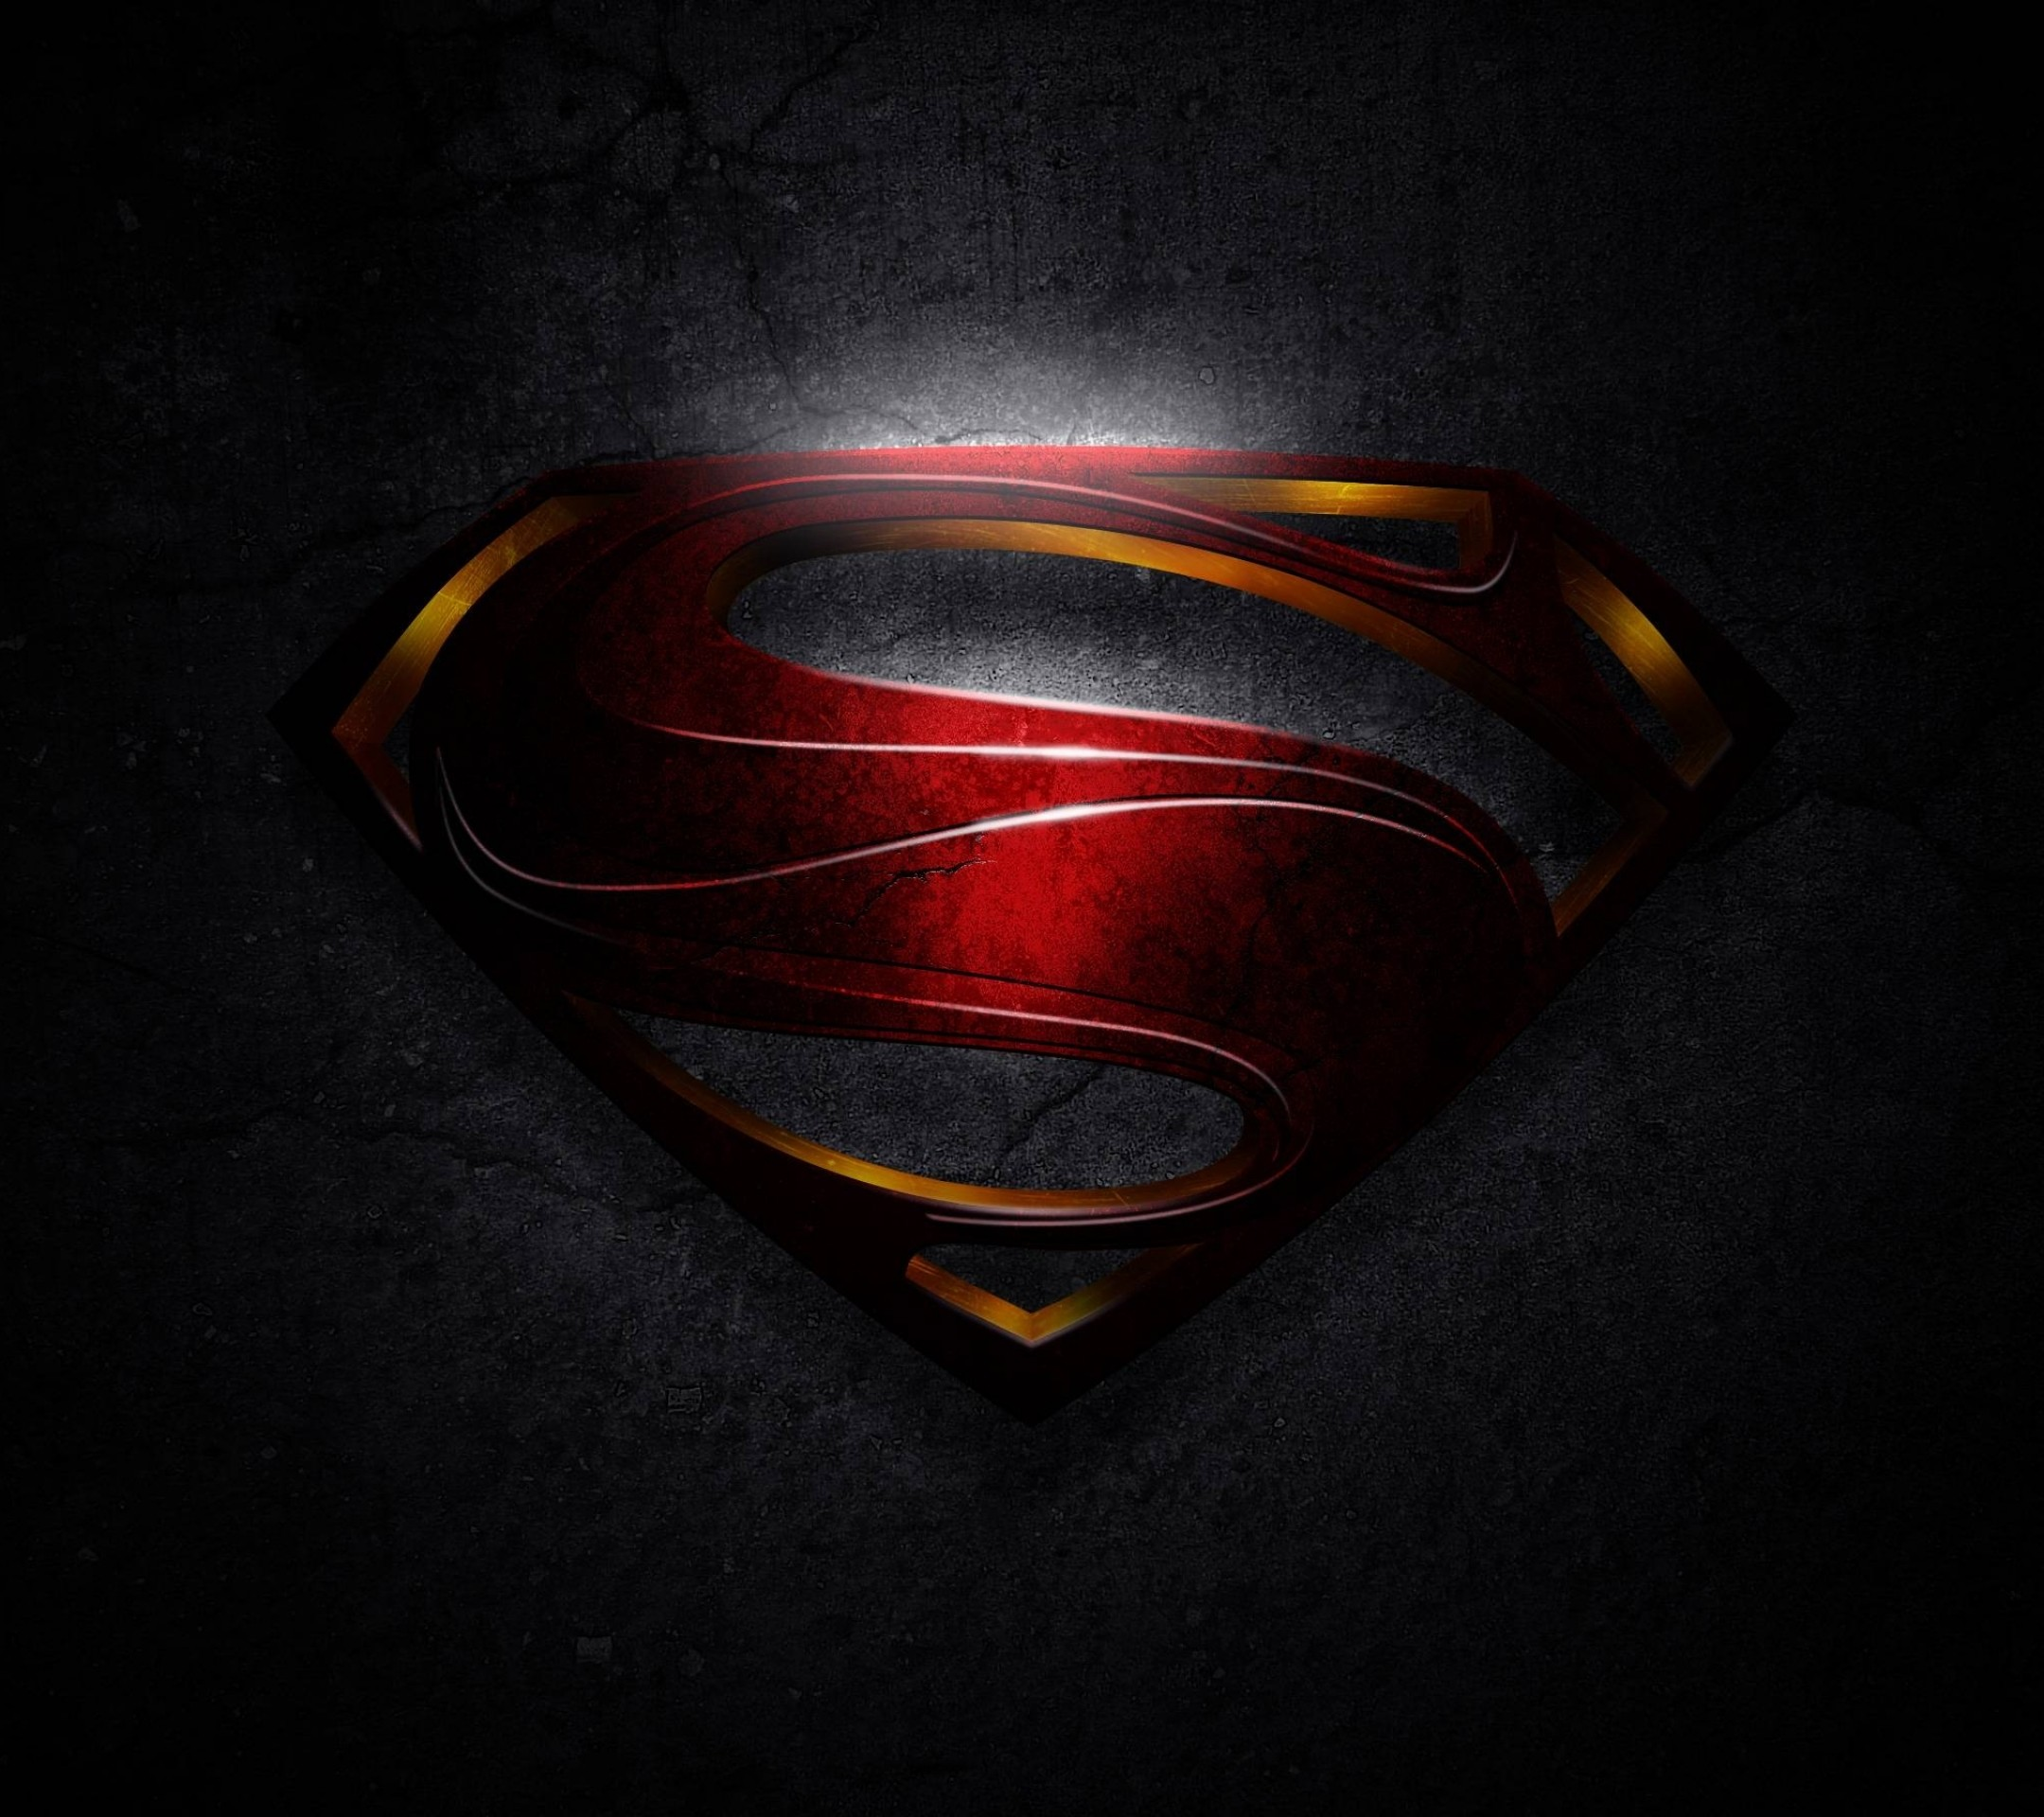 Superman desktop wallpapers 70 images - Superhero iphone wallpaper hd ...